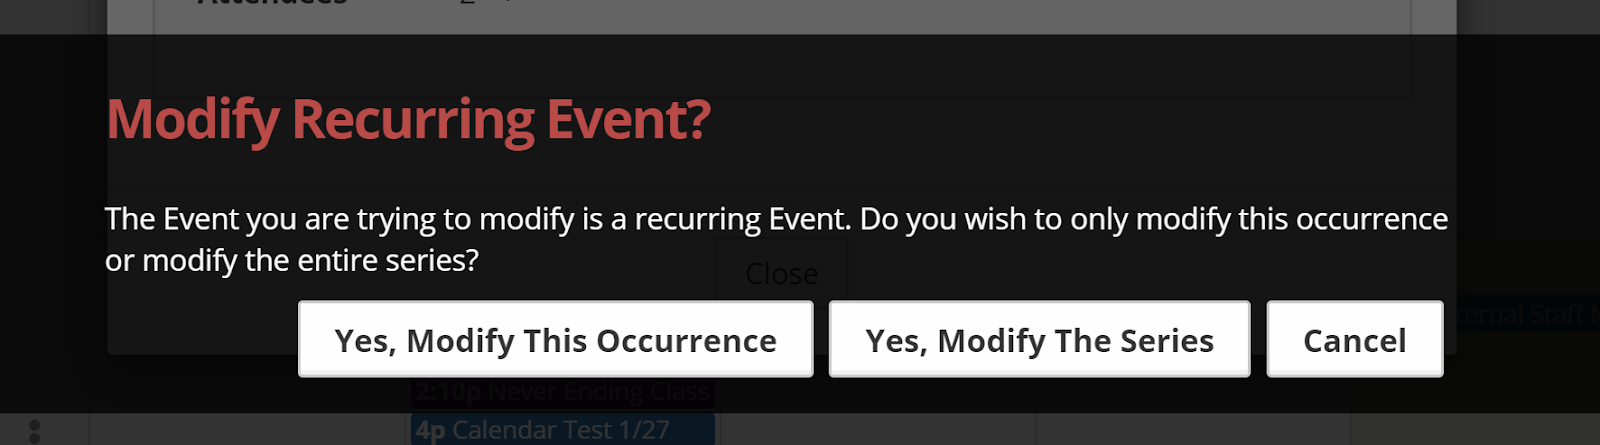 Modifying a recurring event dialog warning